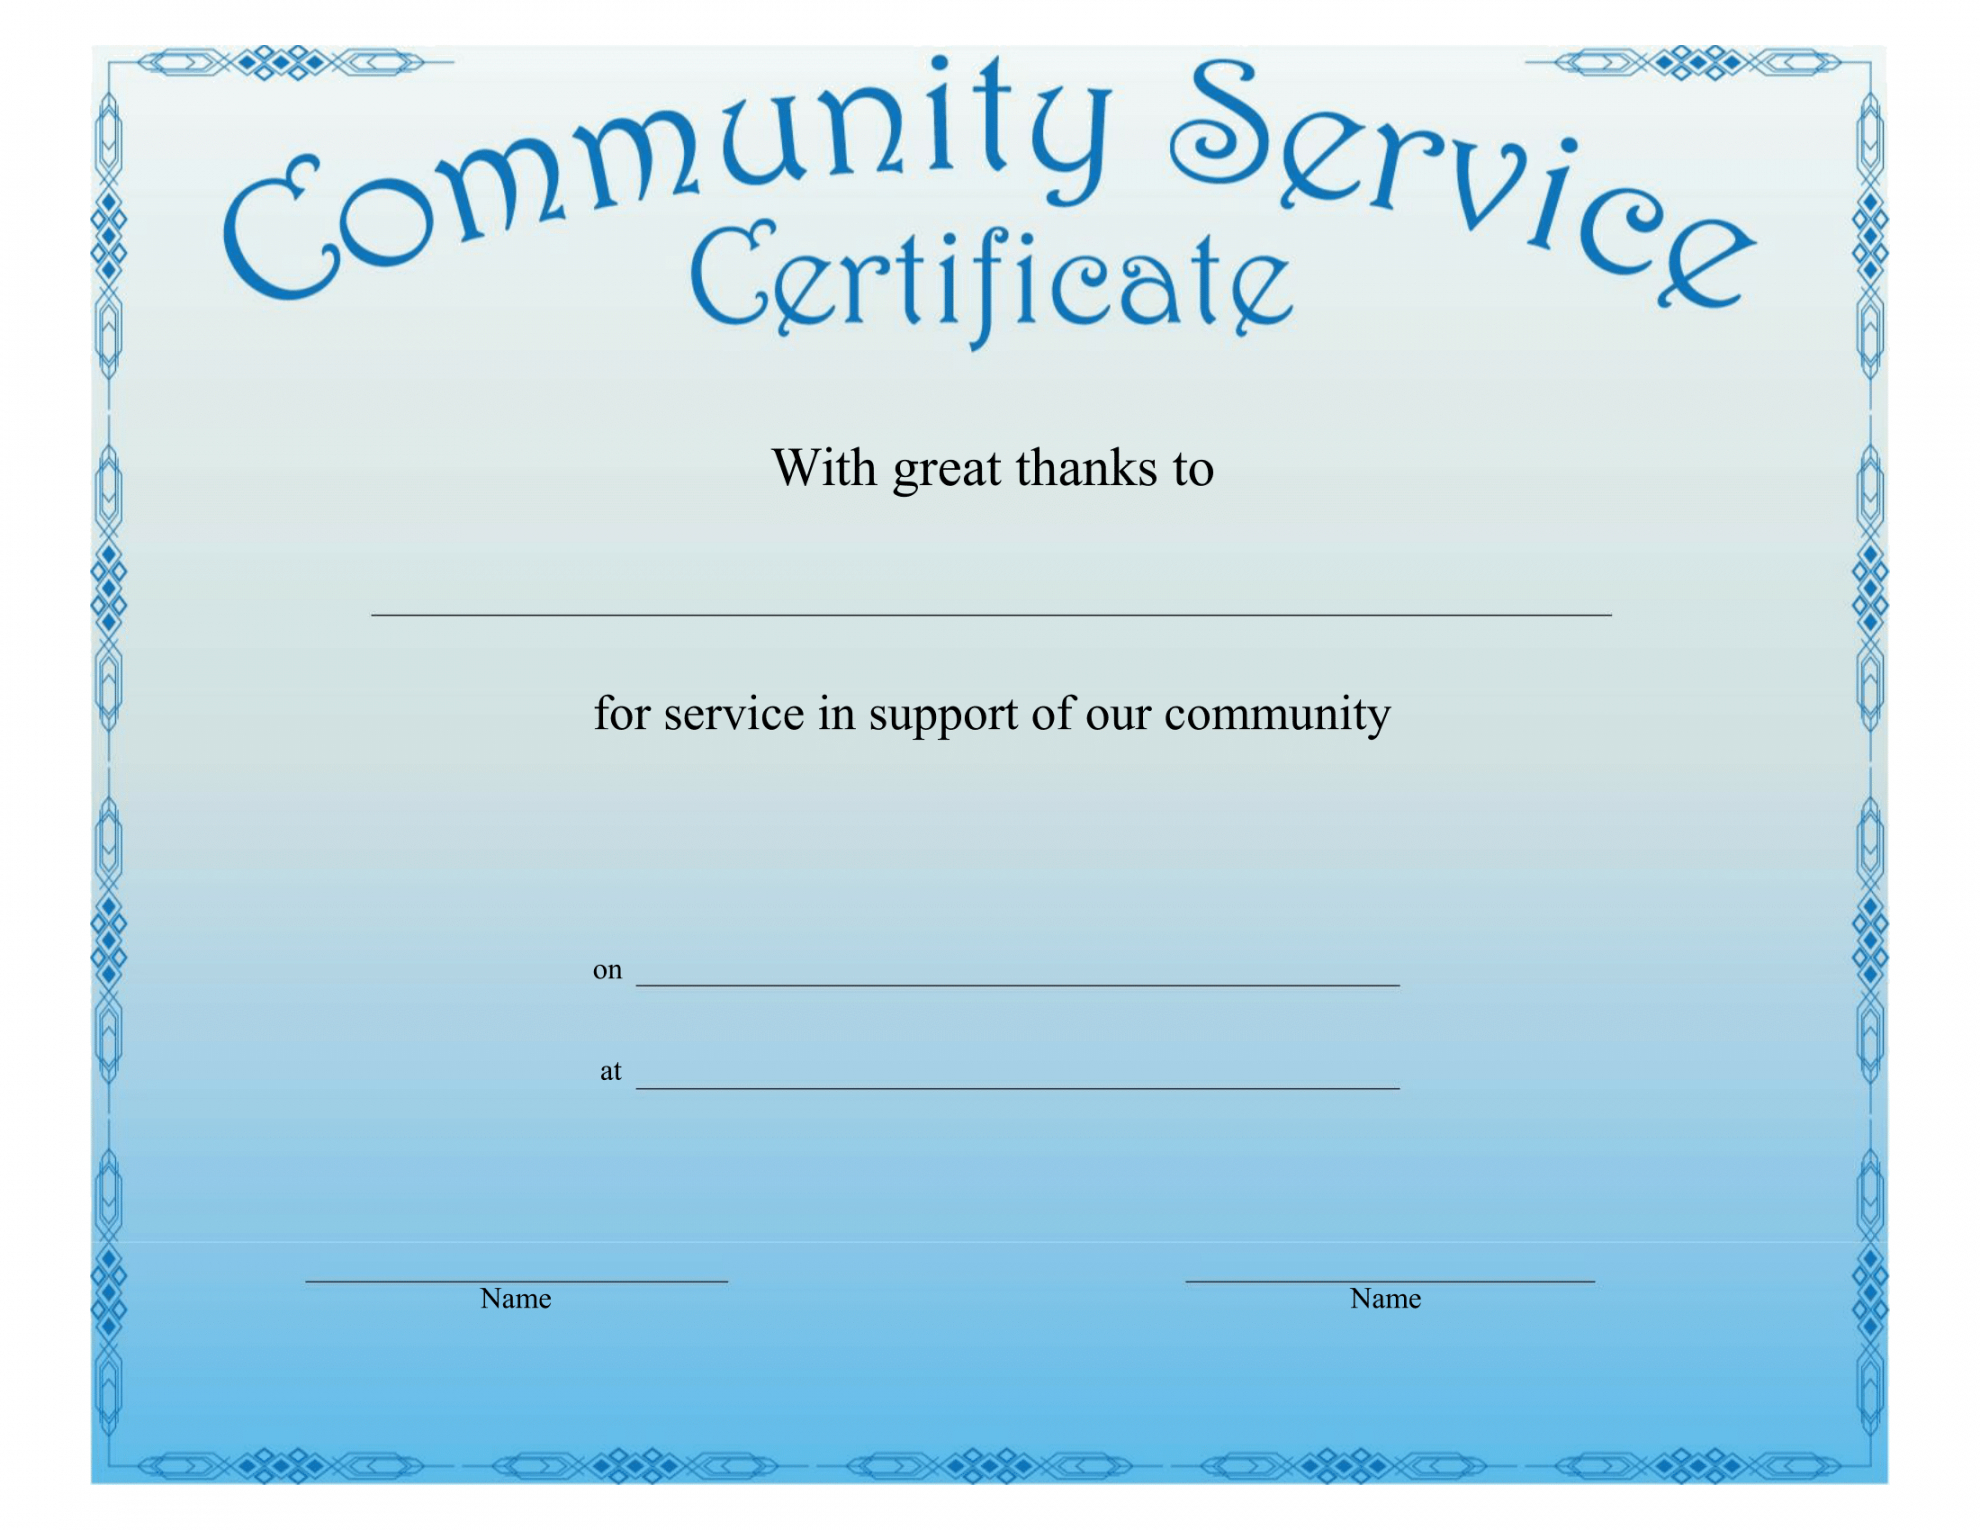 Community Service Certificate Template Regarding This Entitles The Bearer To Template Certificate